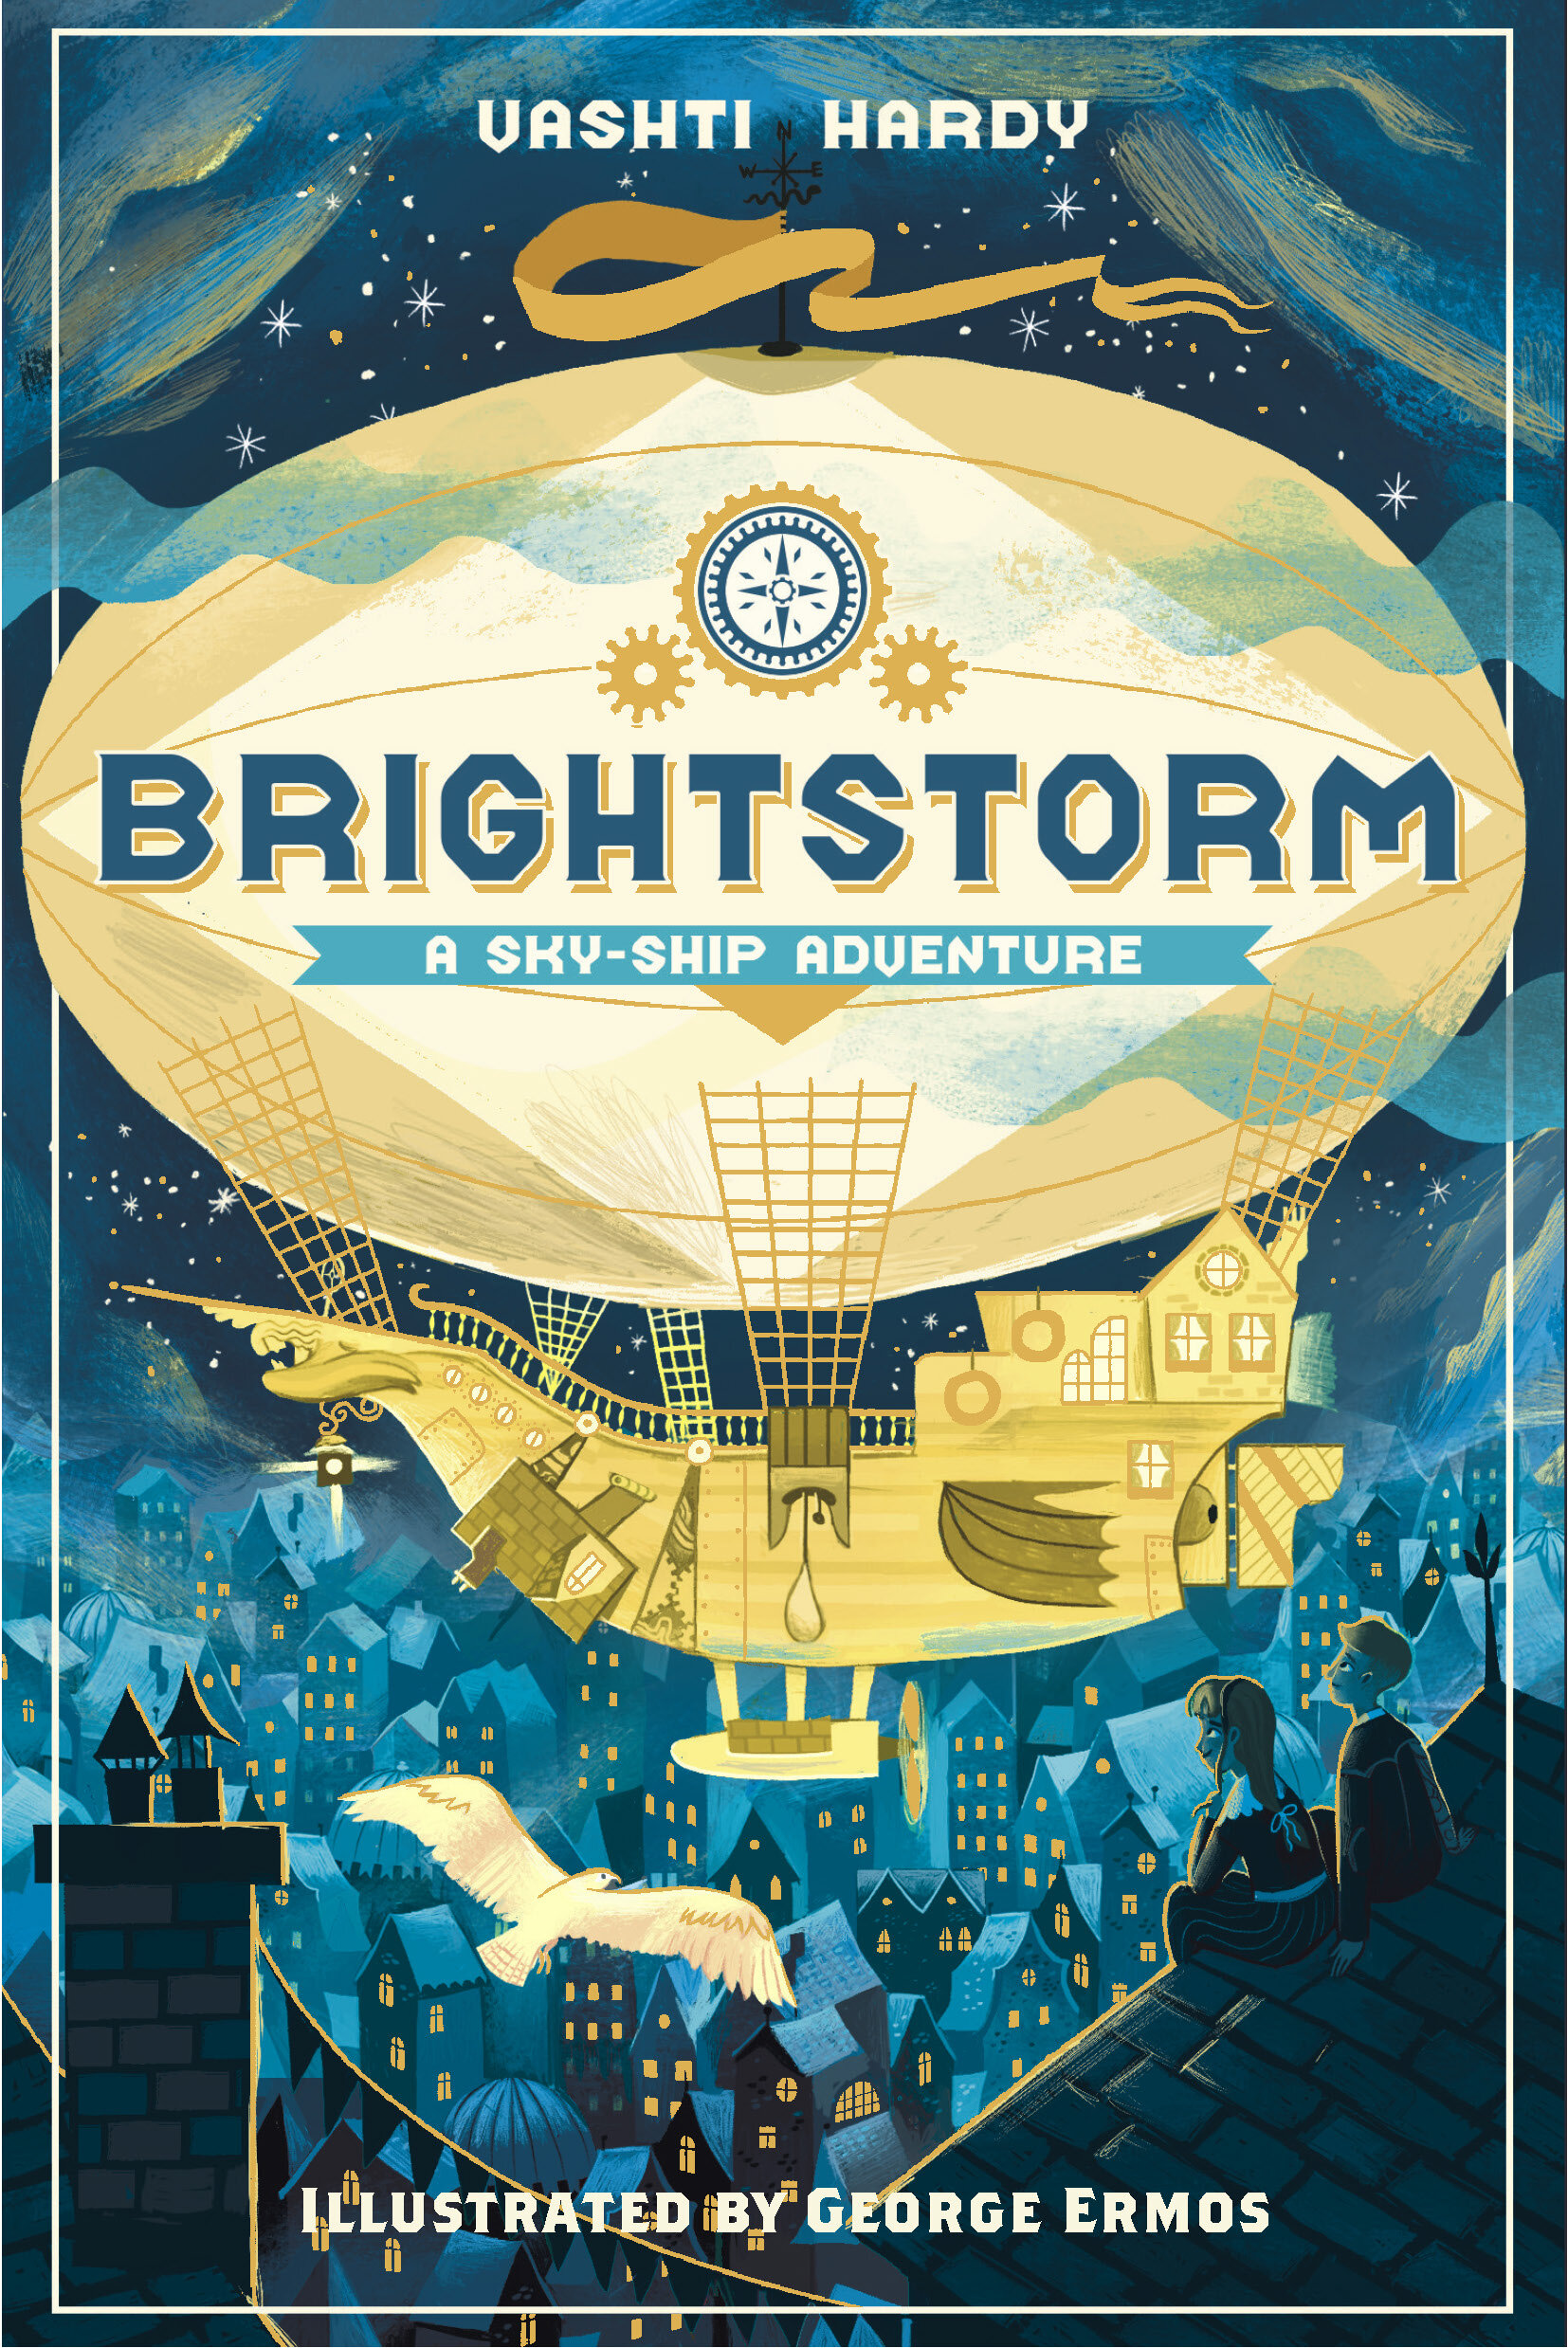 Brightstorm published by Norton Young Readers in North America - hardback edition with illustrations - Brightstorm by Vashti Hardy, illustrated by George ErmosISBN: 978-1-324-00564-3Pub date: March 17, 2020